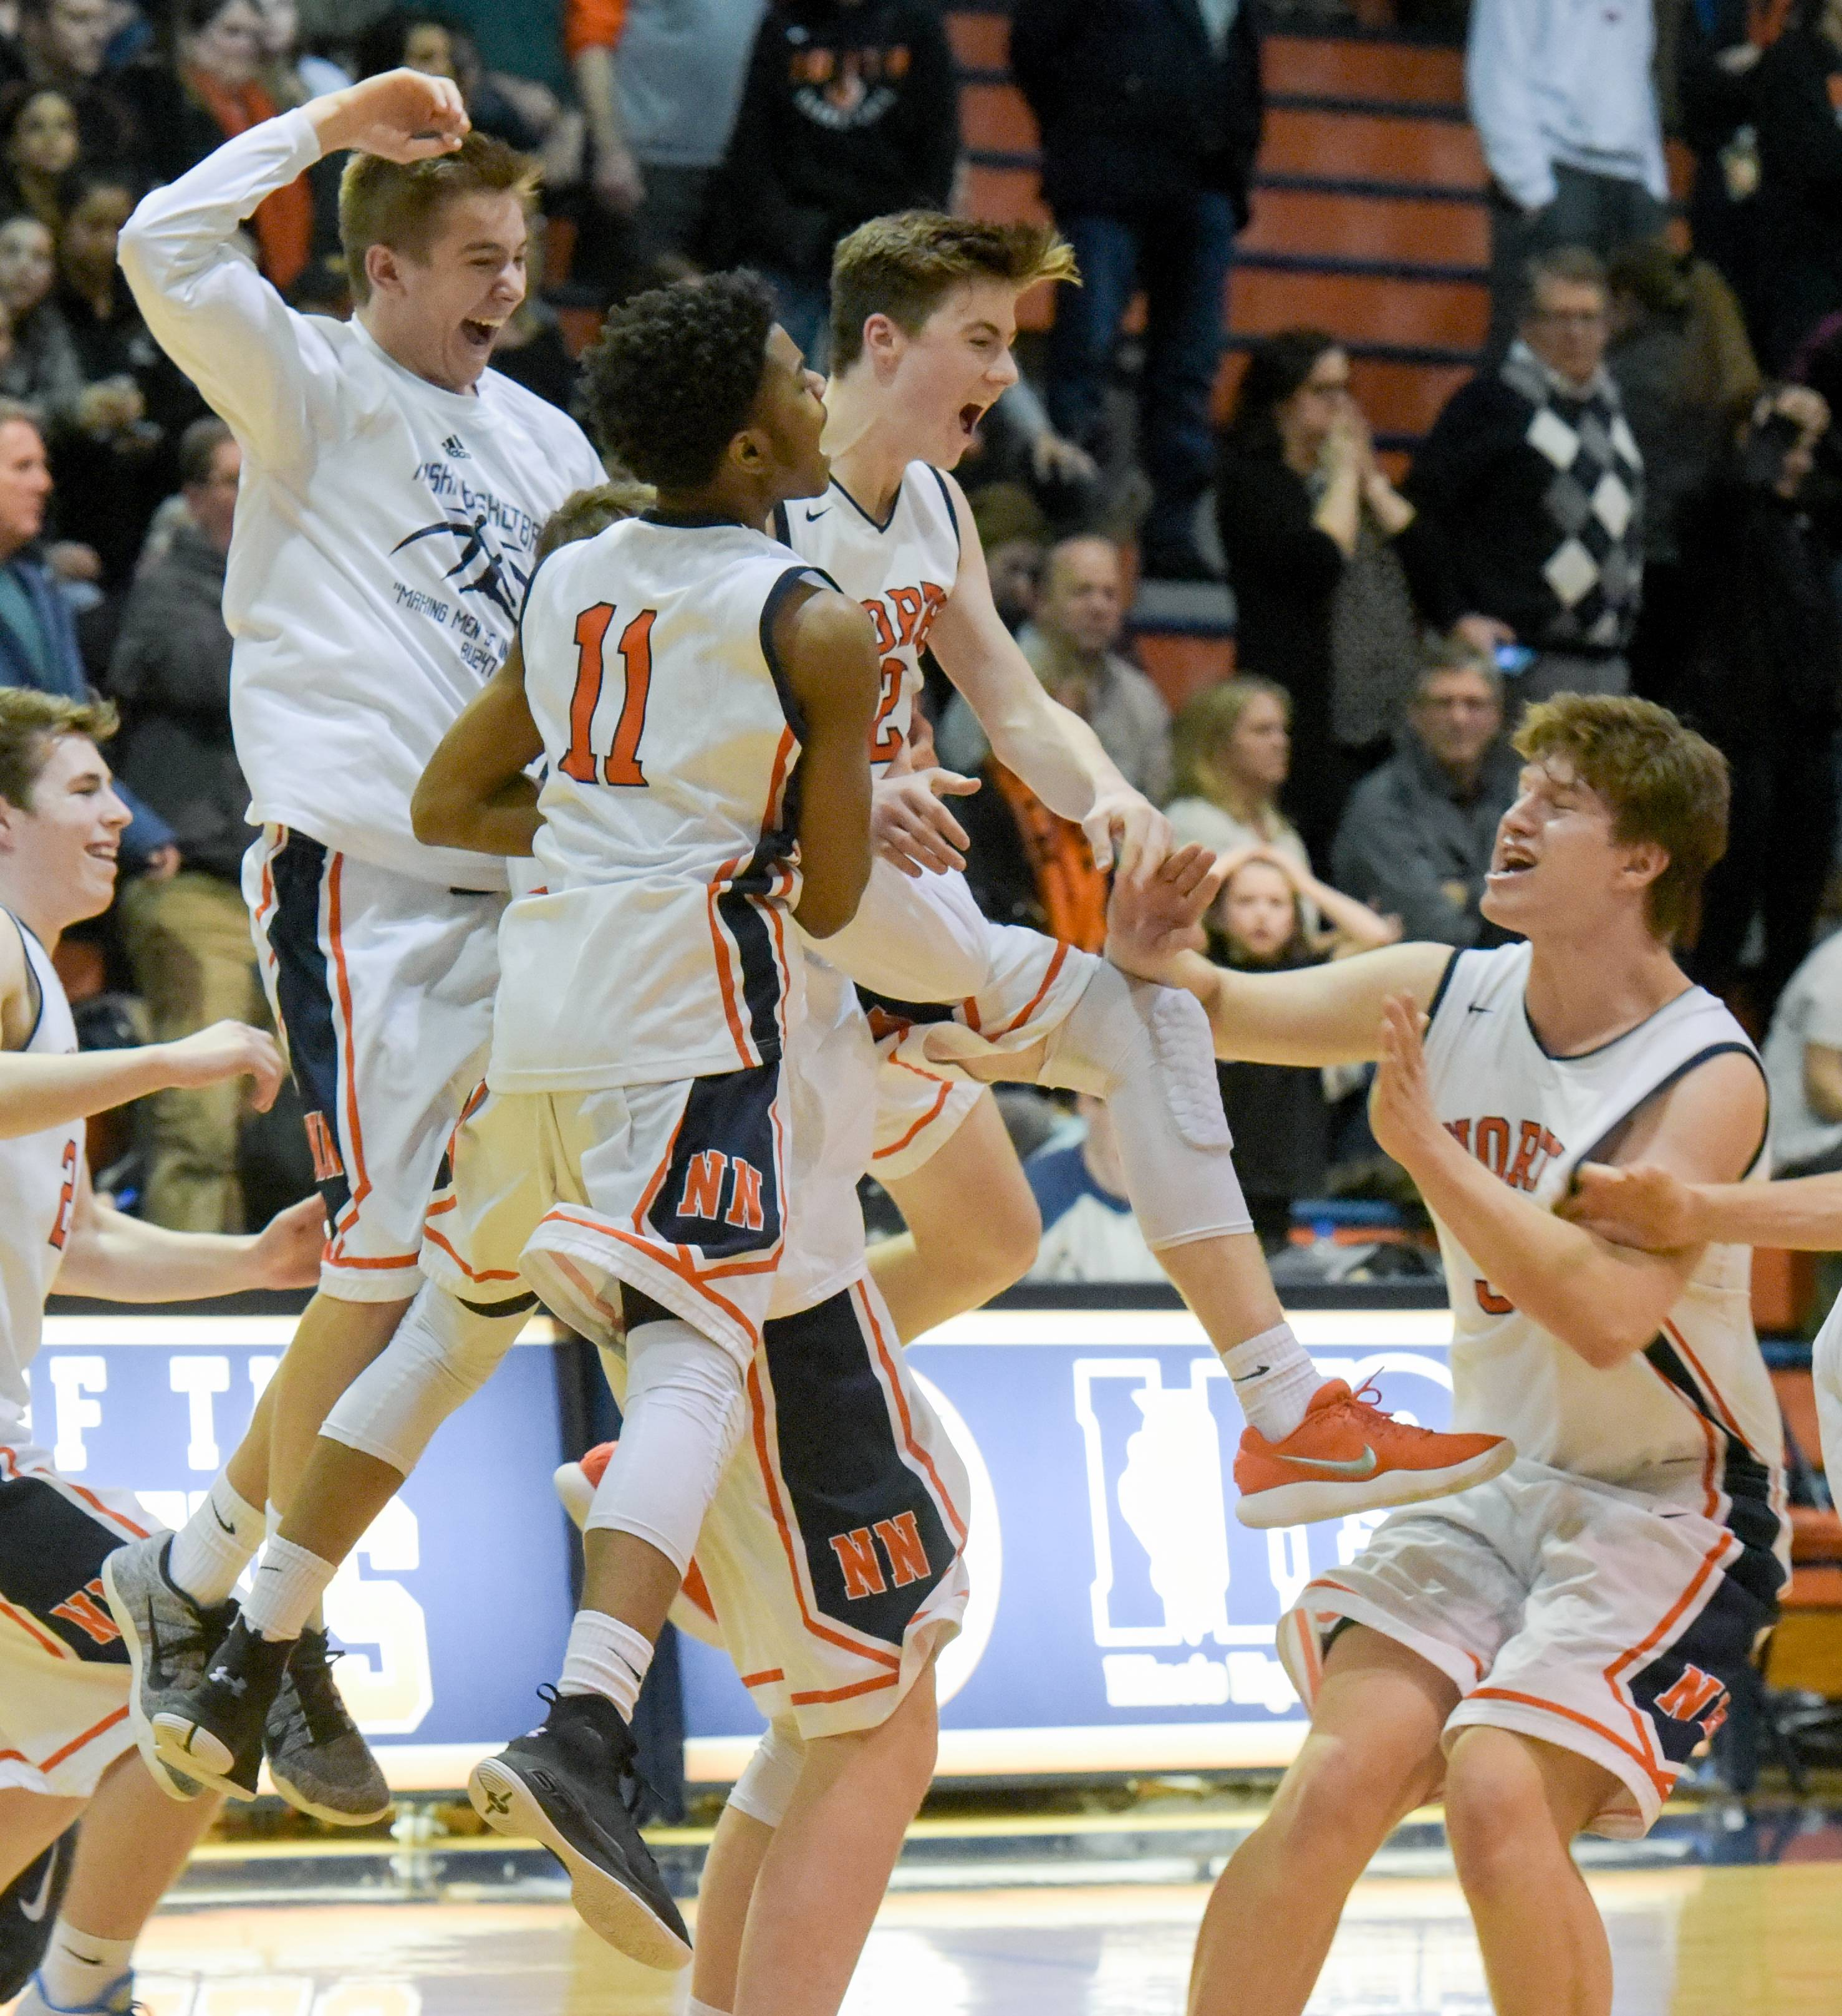 Naperville North celebrates their 37-35 win in double overtime over Wheaton Warrenville South on February 21, 2018.